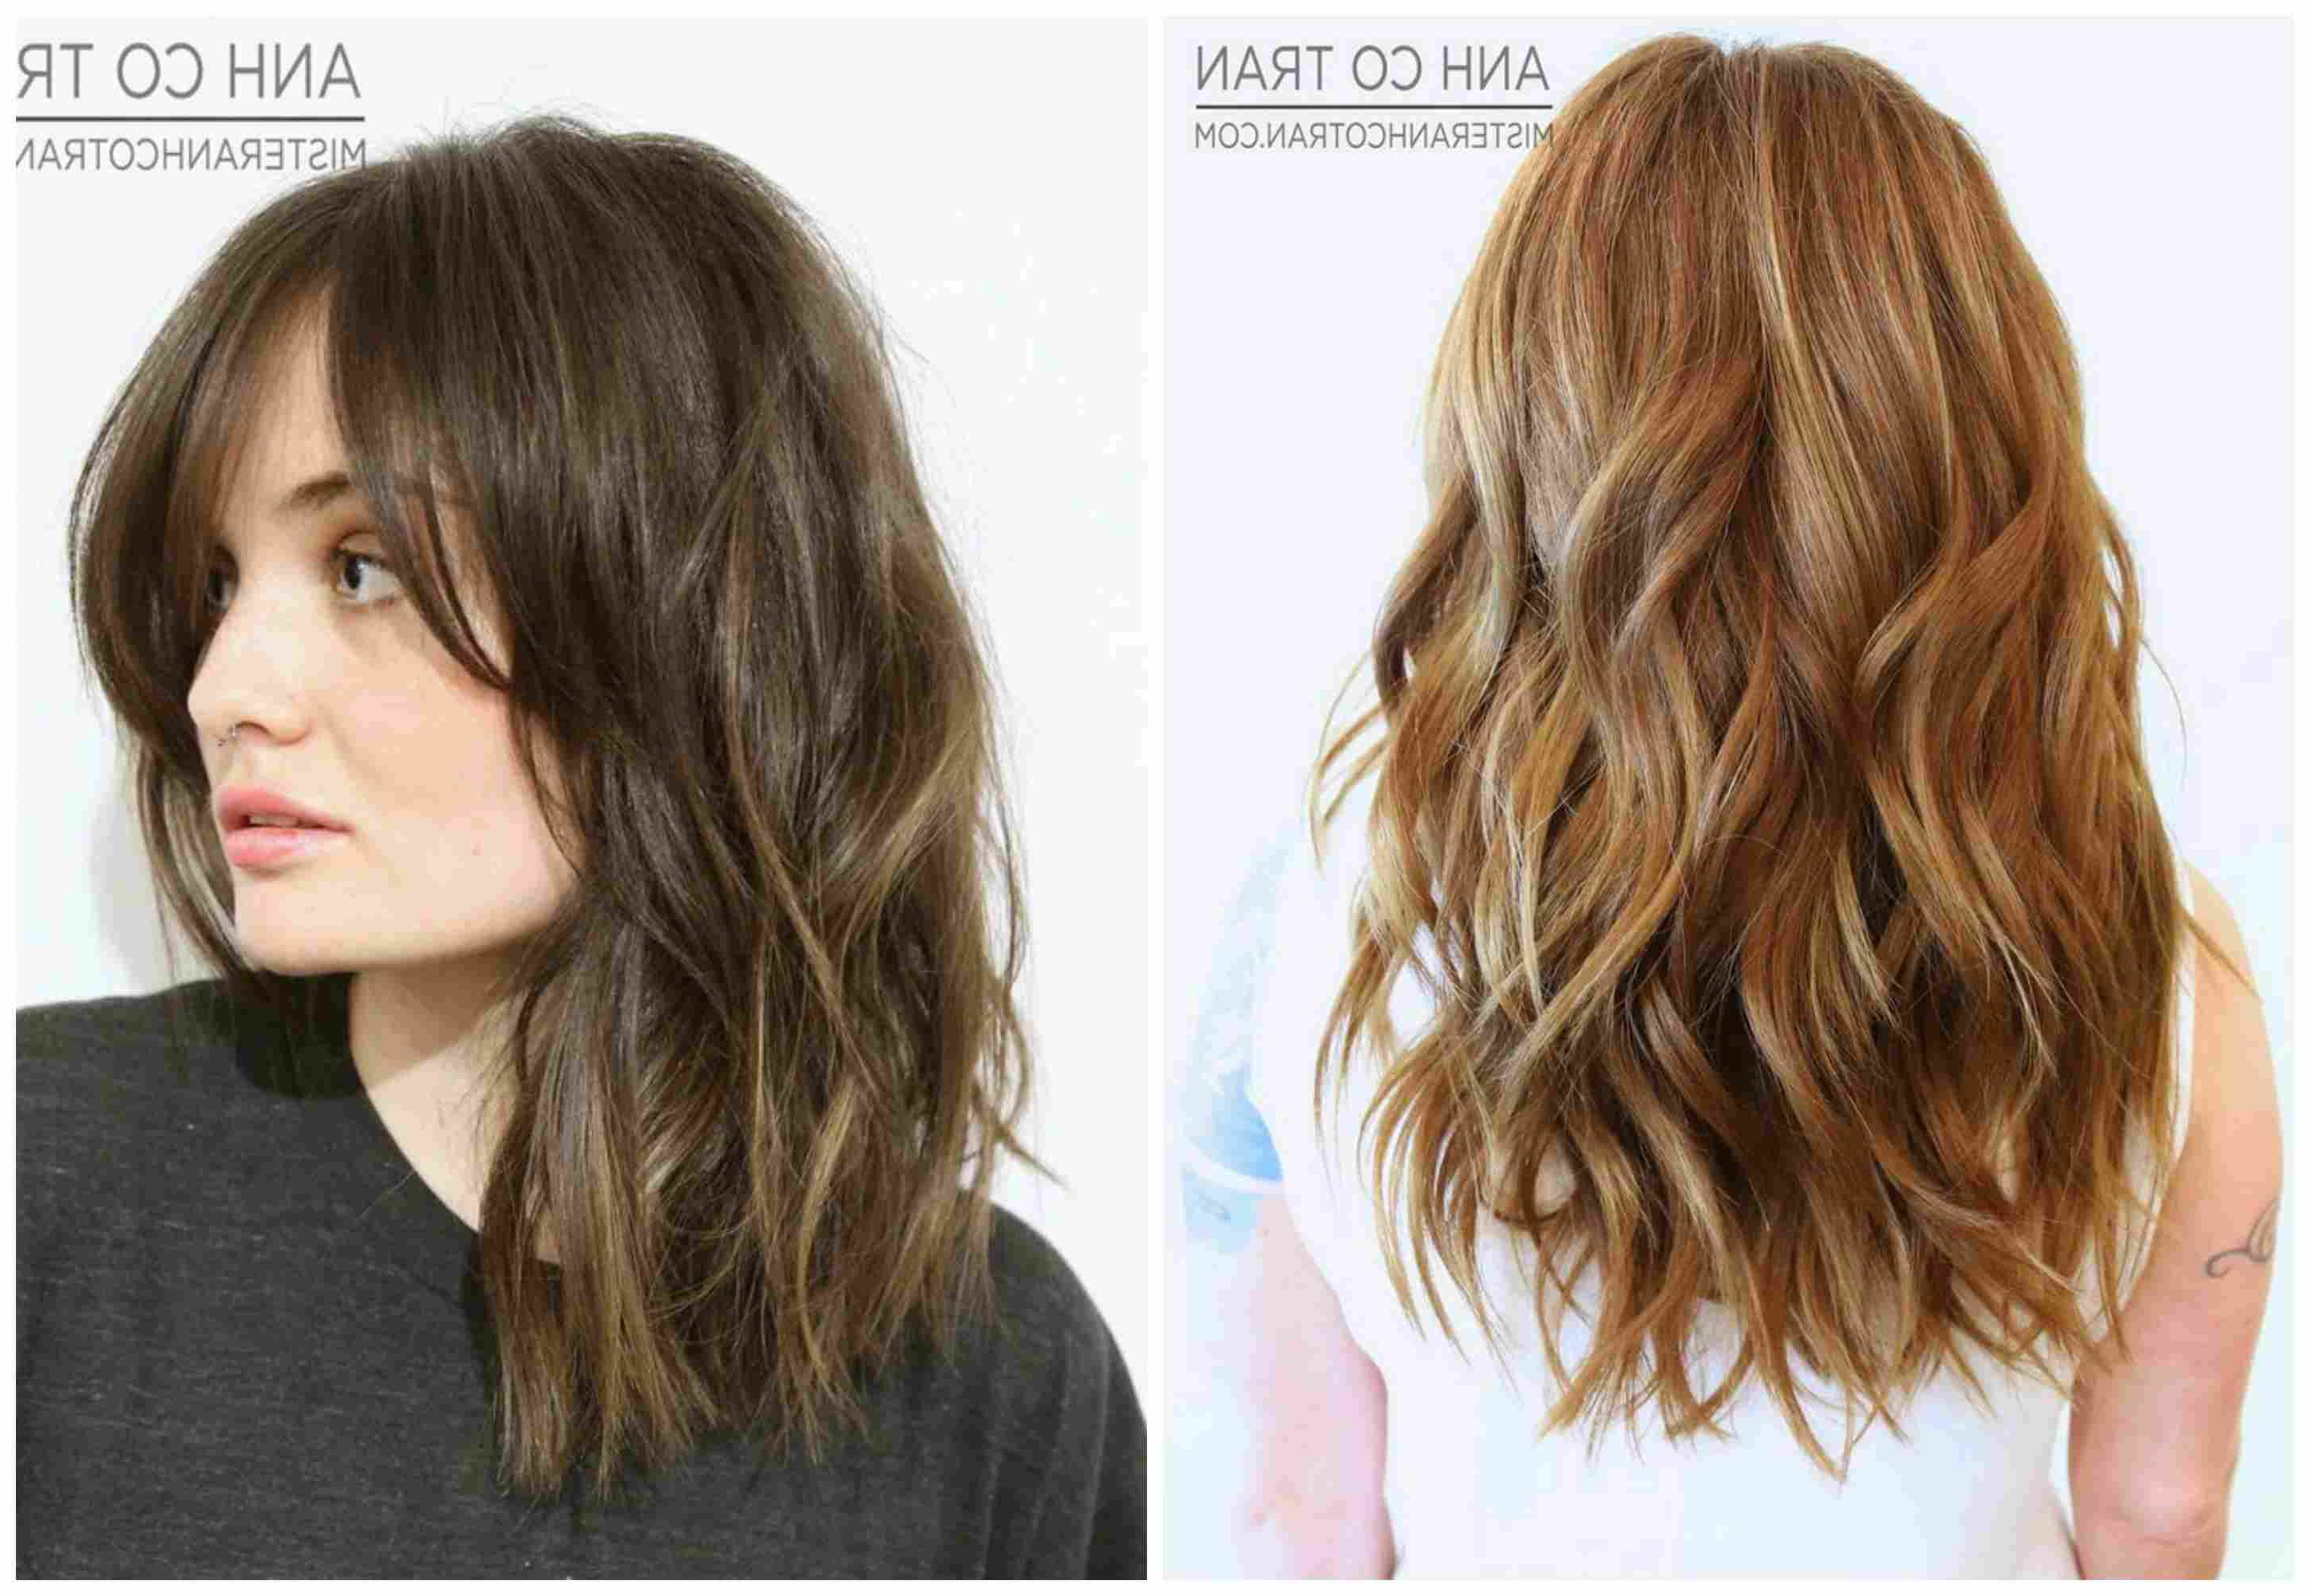 Long Wavy Hair: The Best Cuts, Colors And Styles With 2020 Beach Waves Hairstyles (Gallery 5 of 20)